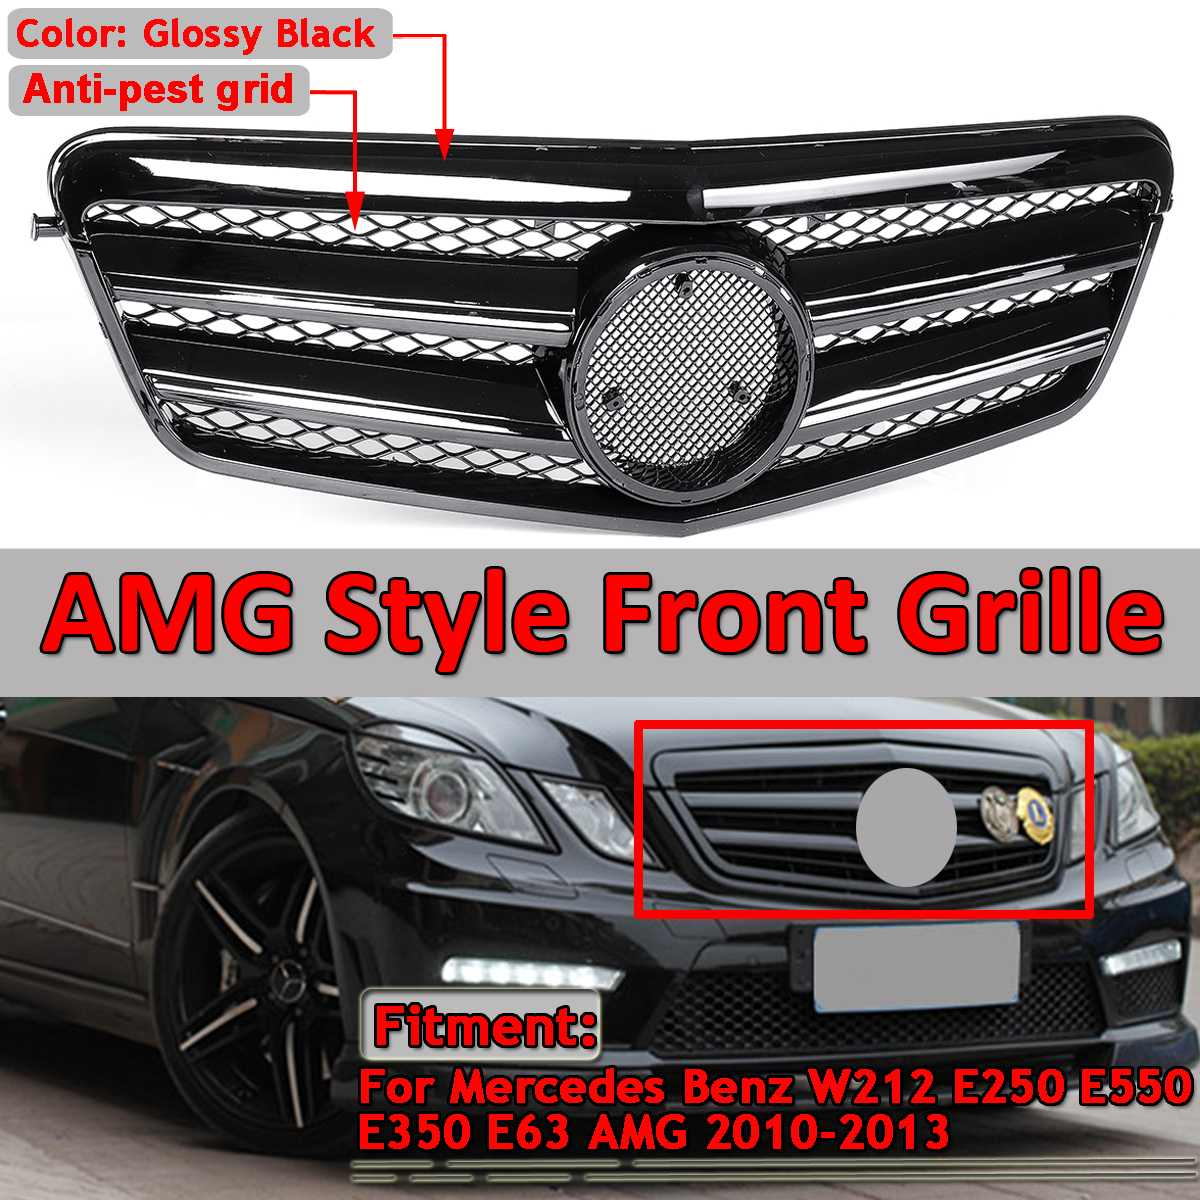 W212 GTR Style Car Front Bumper Grill Grille For Mercedes For Benz E250 E550 E350 E63 For AMG 2010-2013 Racing Grills no emblem image